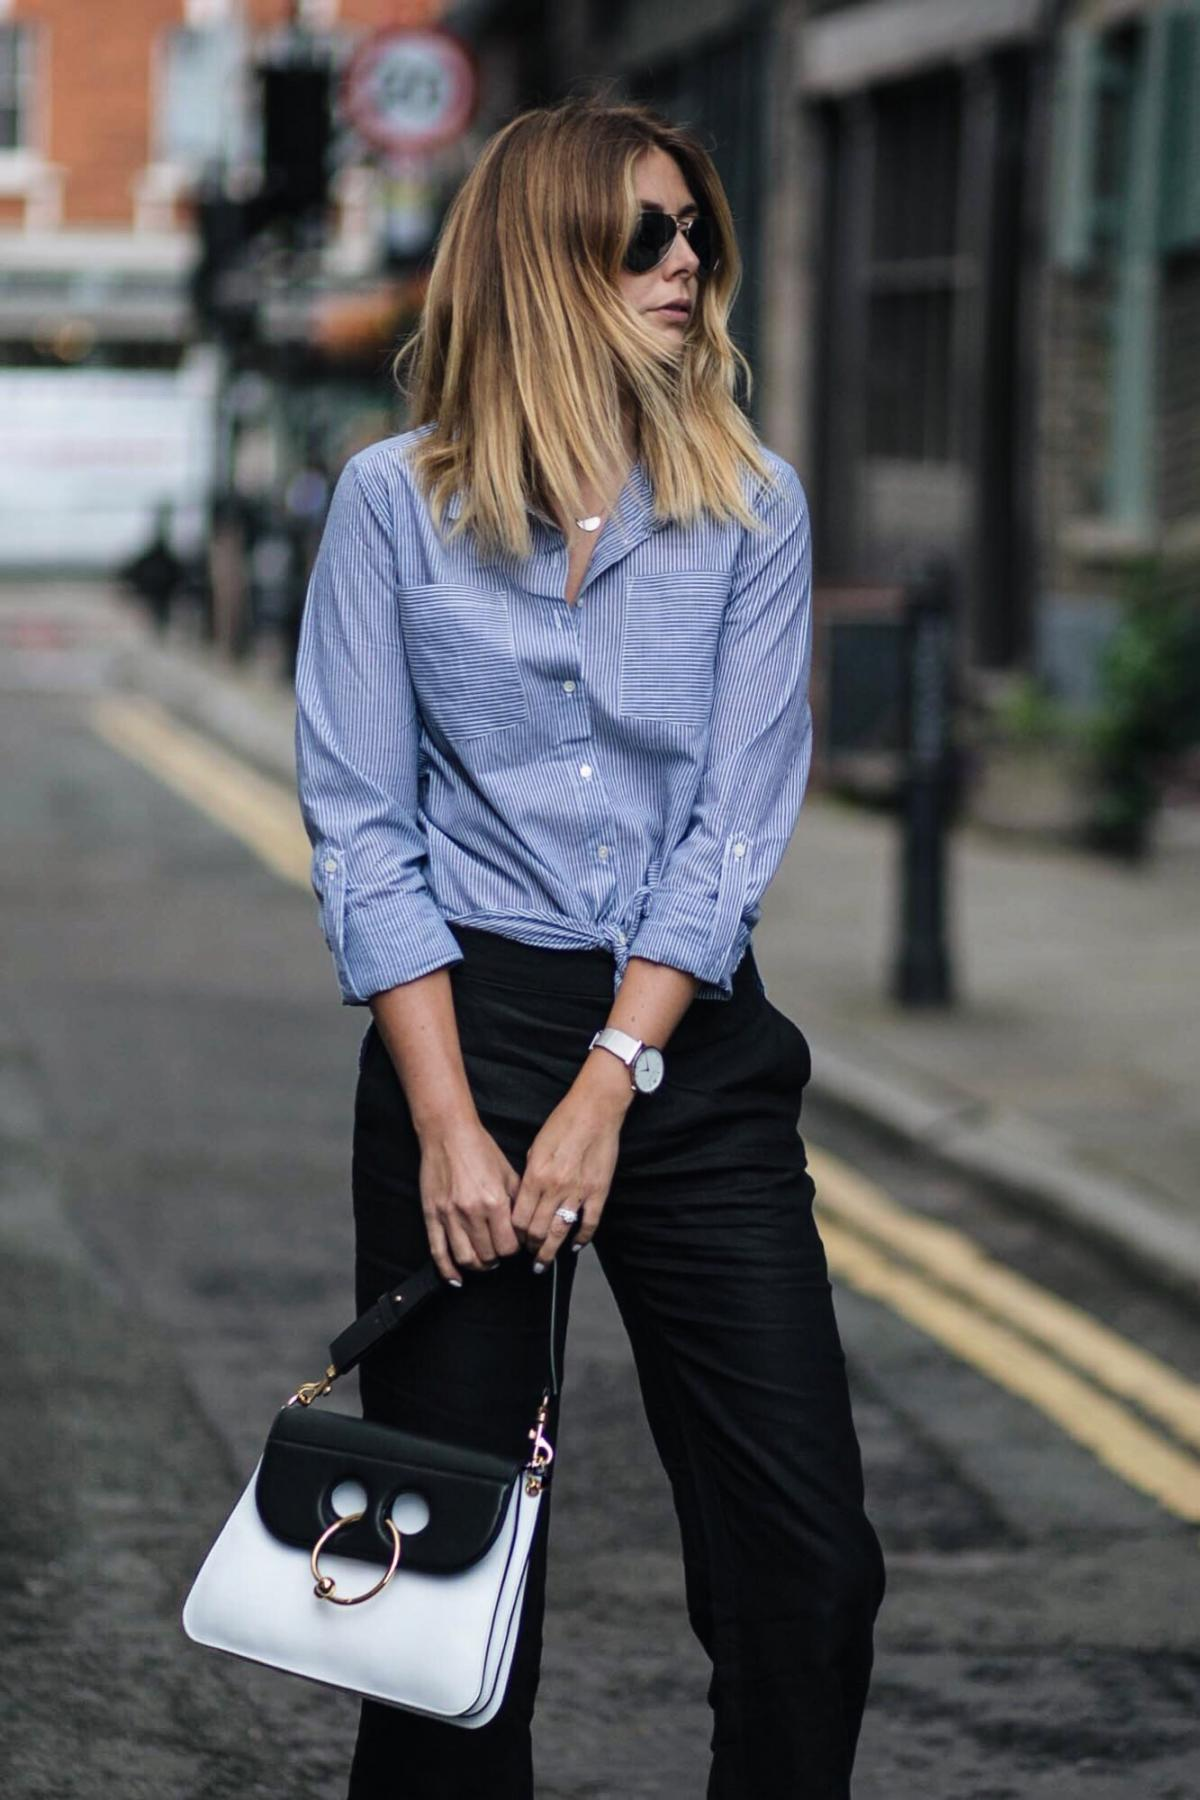 blue pinstripe shirt tied in a knot at the waist, black trousers, london street style